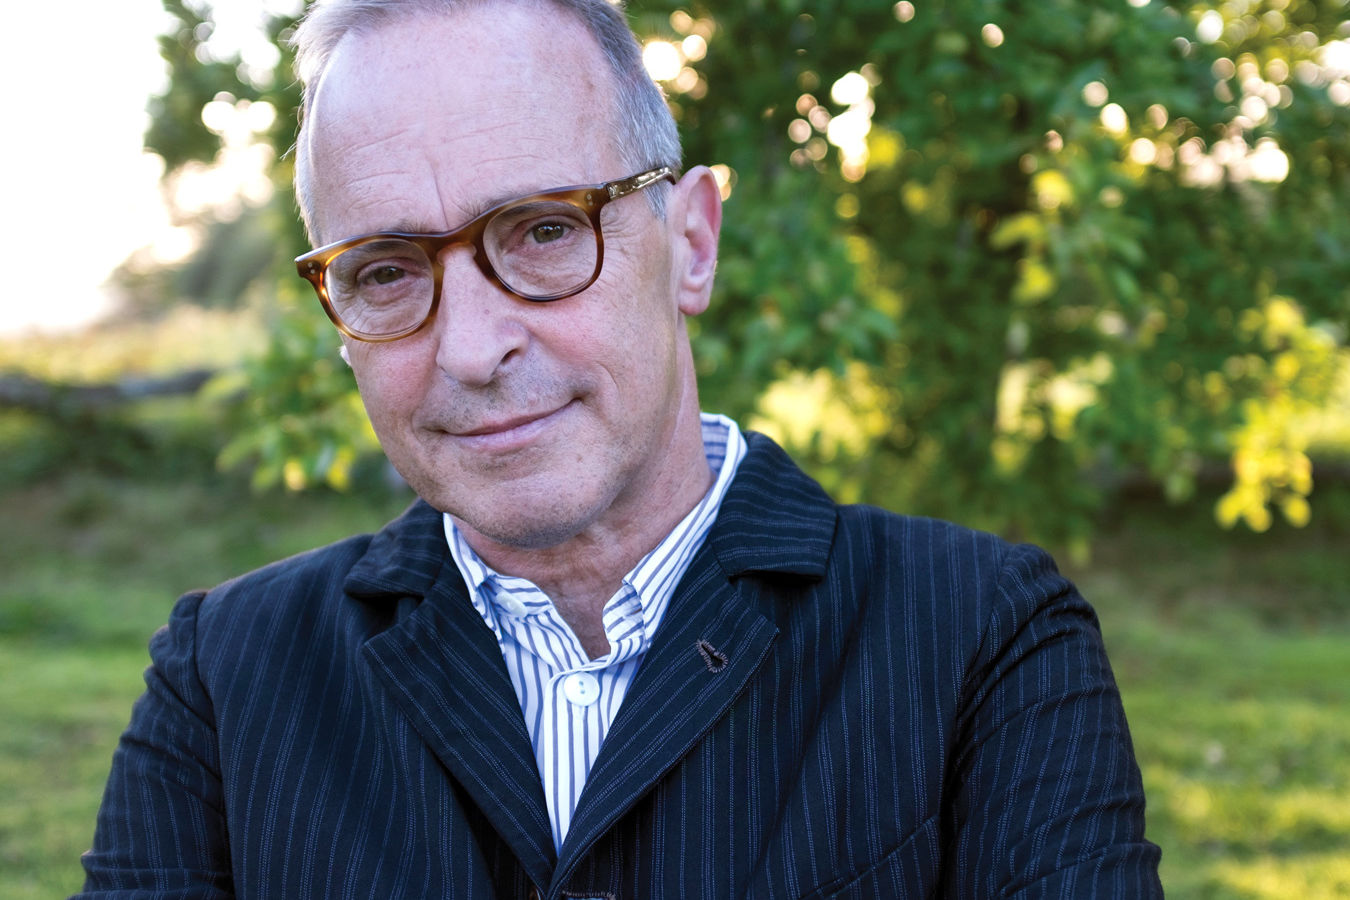 David sedaris  credit photograph by ingrid christie  ingridchristie dot com  three ug7dod